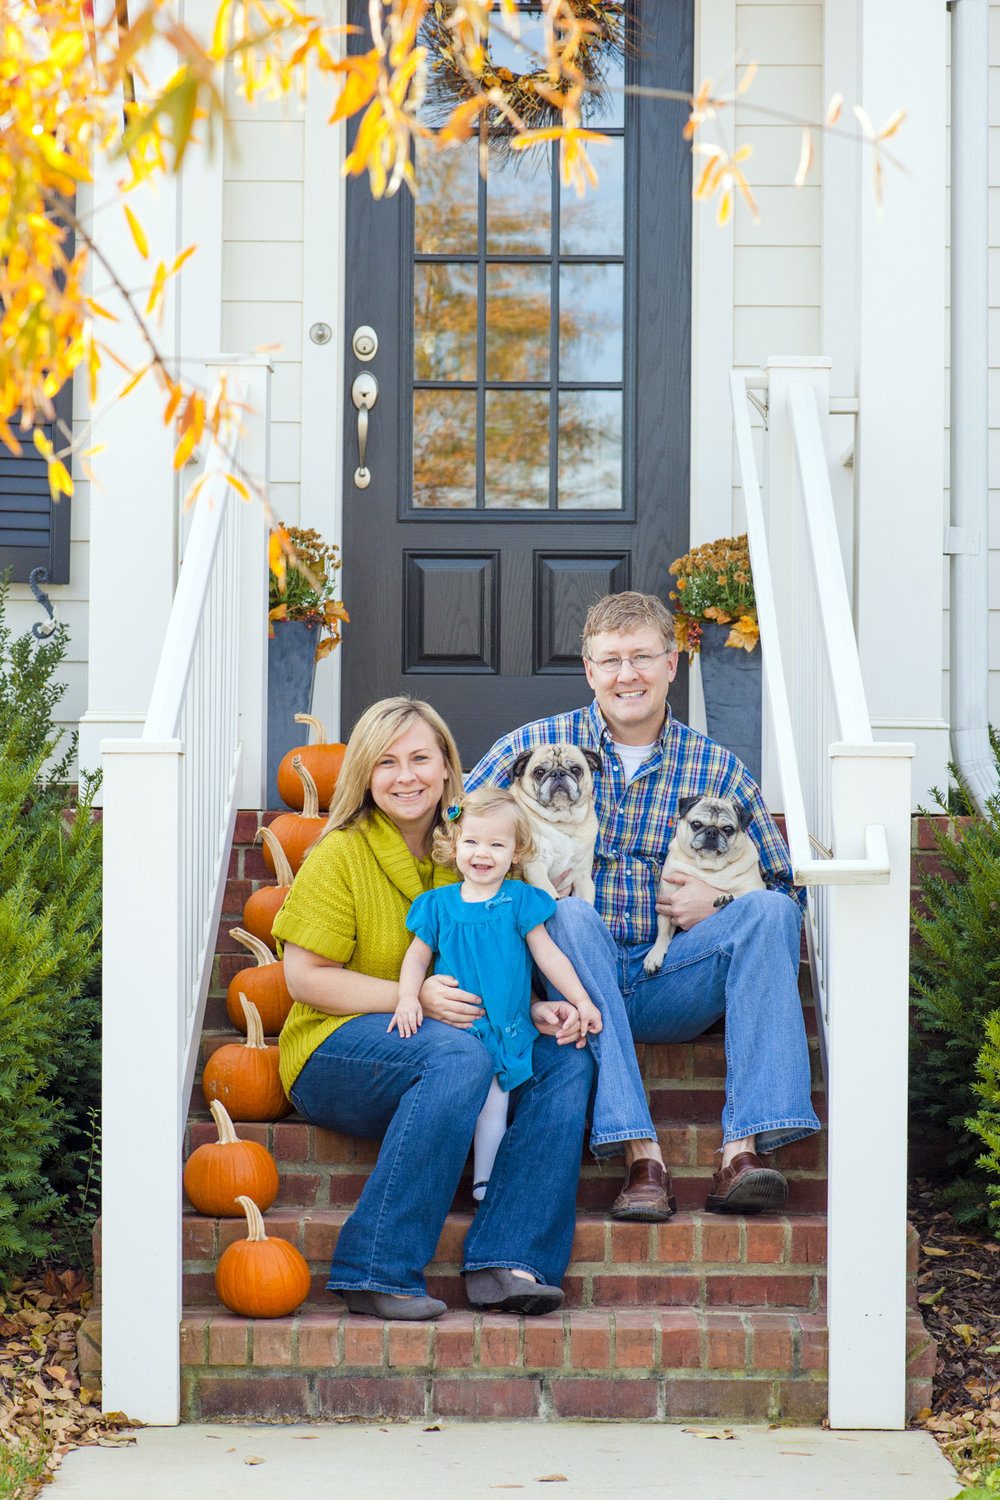 Family Photographer Nashville Tennessee The Velvet Trunk-0026.jpg